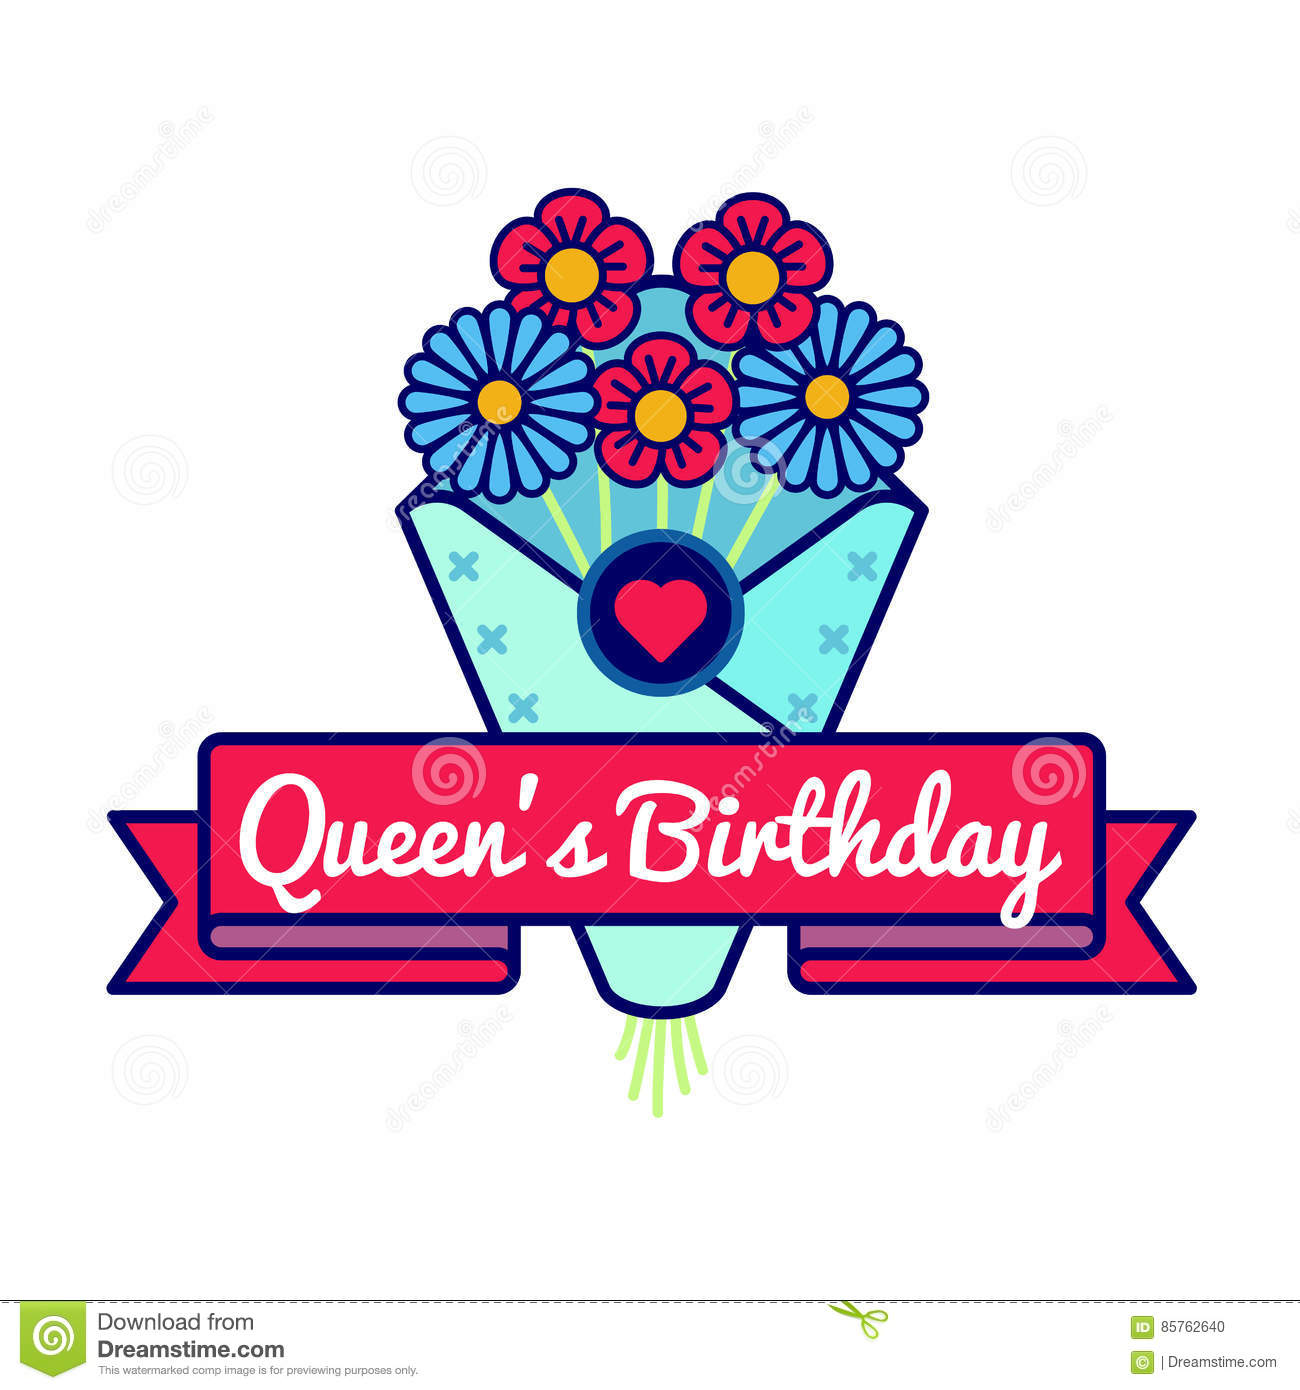 Happy queens birthday greeting emblem stock vector illustration of happy queens birthday emblem isolated vector illustration on white background 10 june british holiday event label greeting card decoration graphic element m4hsunfo